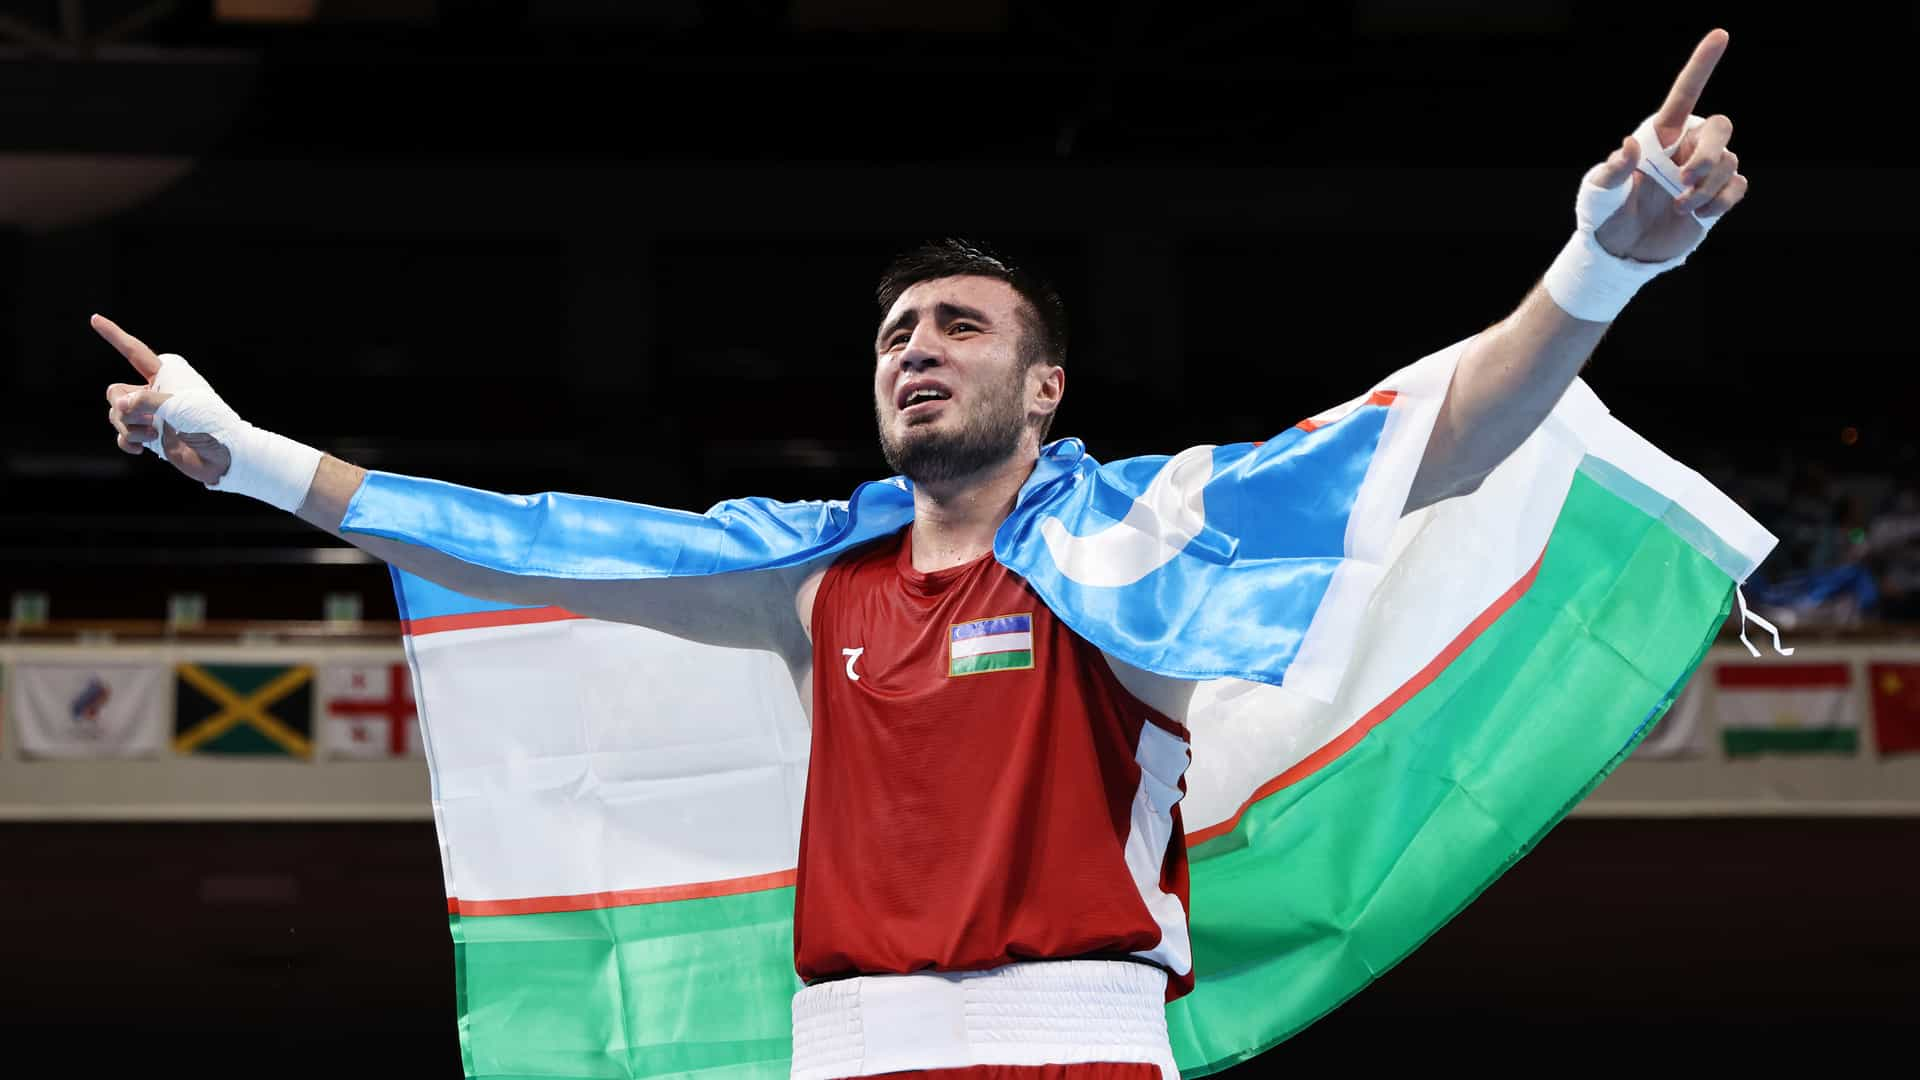 Image for Olympic Boxing Day 16: Uzbekistan's Jalolov wins super heavyweight gold on final day of competition